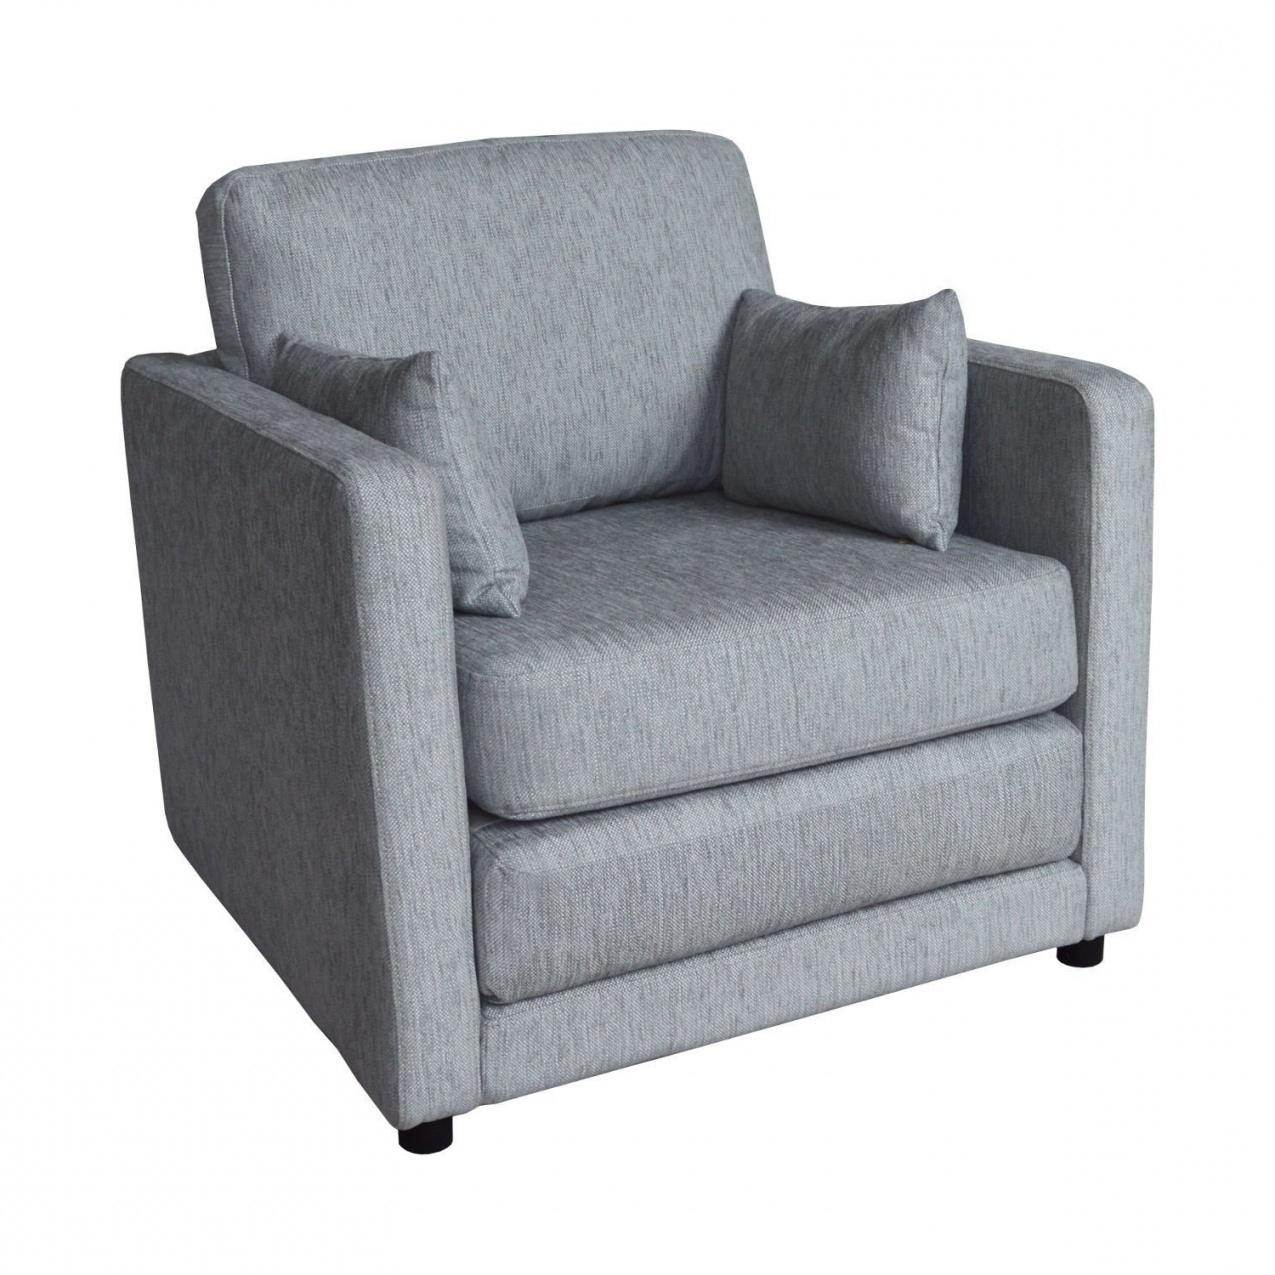 Single Chair Sofa Bed For Sale – Elite Home Within Single Chair Sofa Bed (Image 11 of 20)